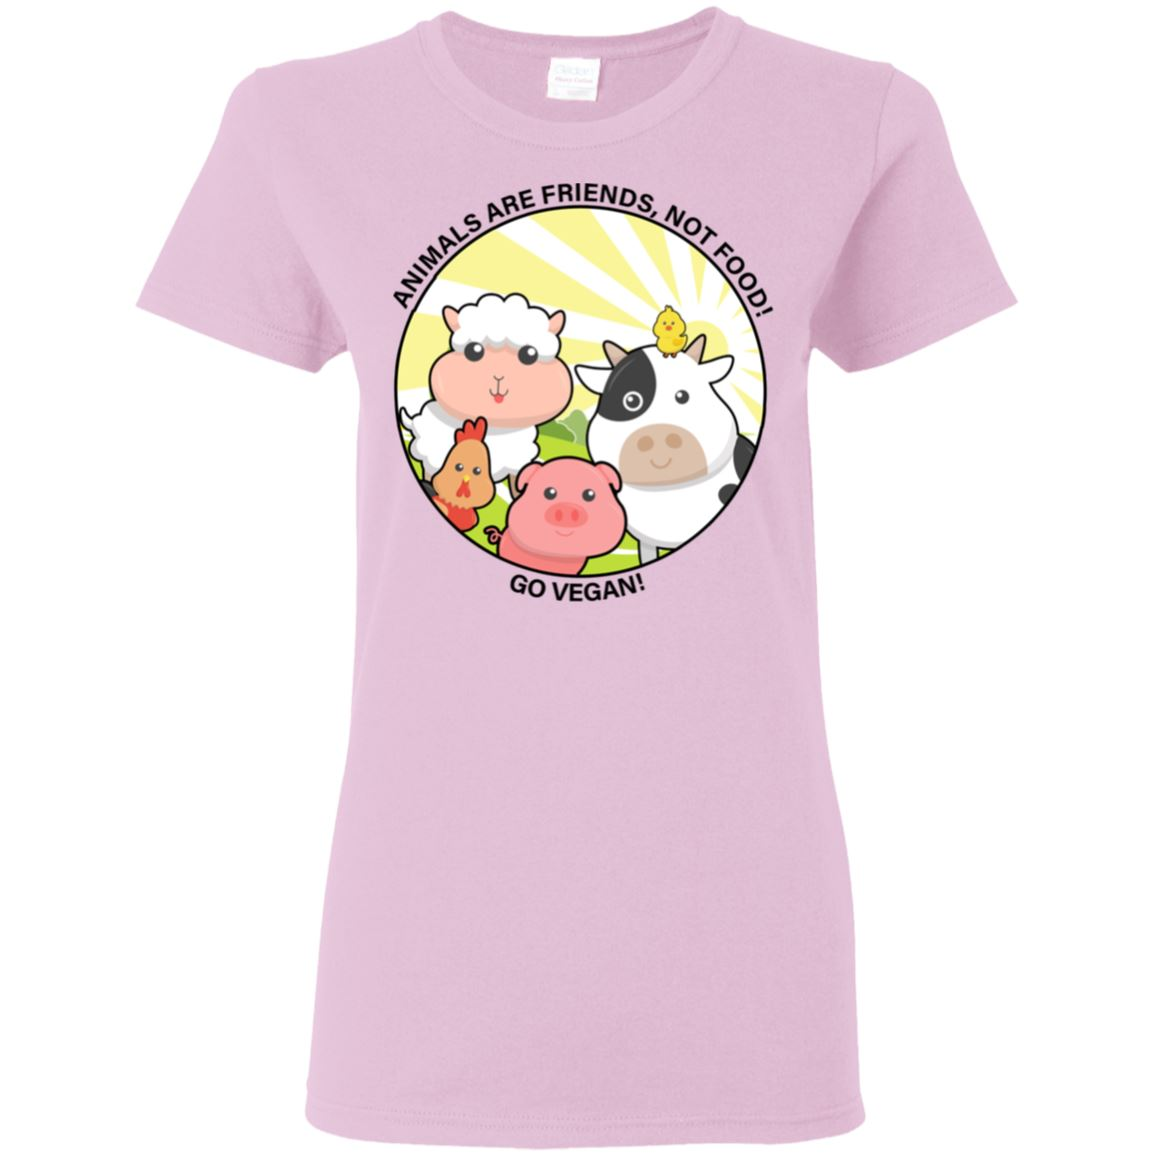 Animals Are Friends Apparel Women's Tshirt Light Pink S